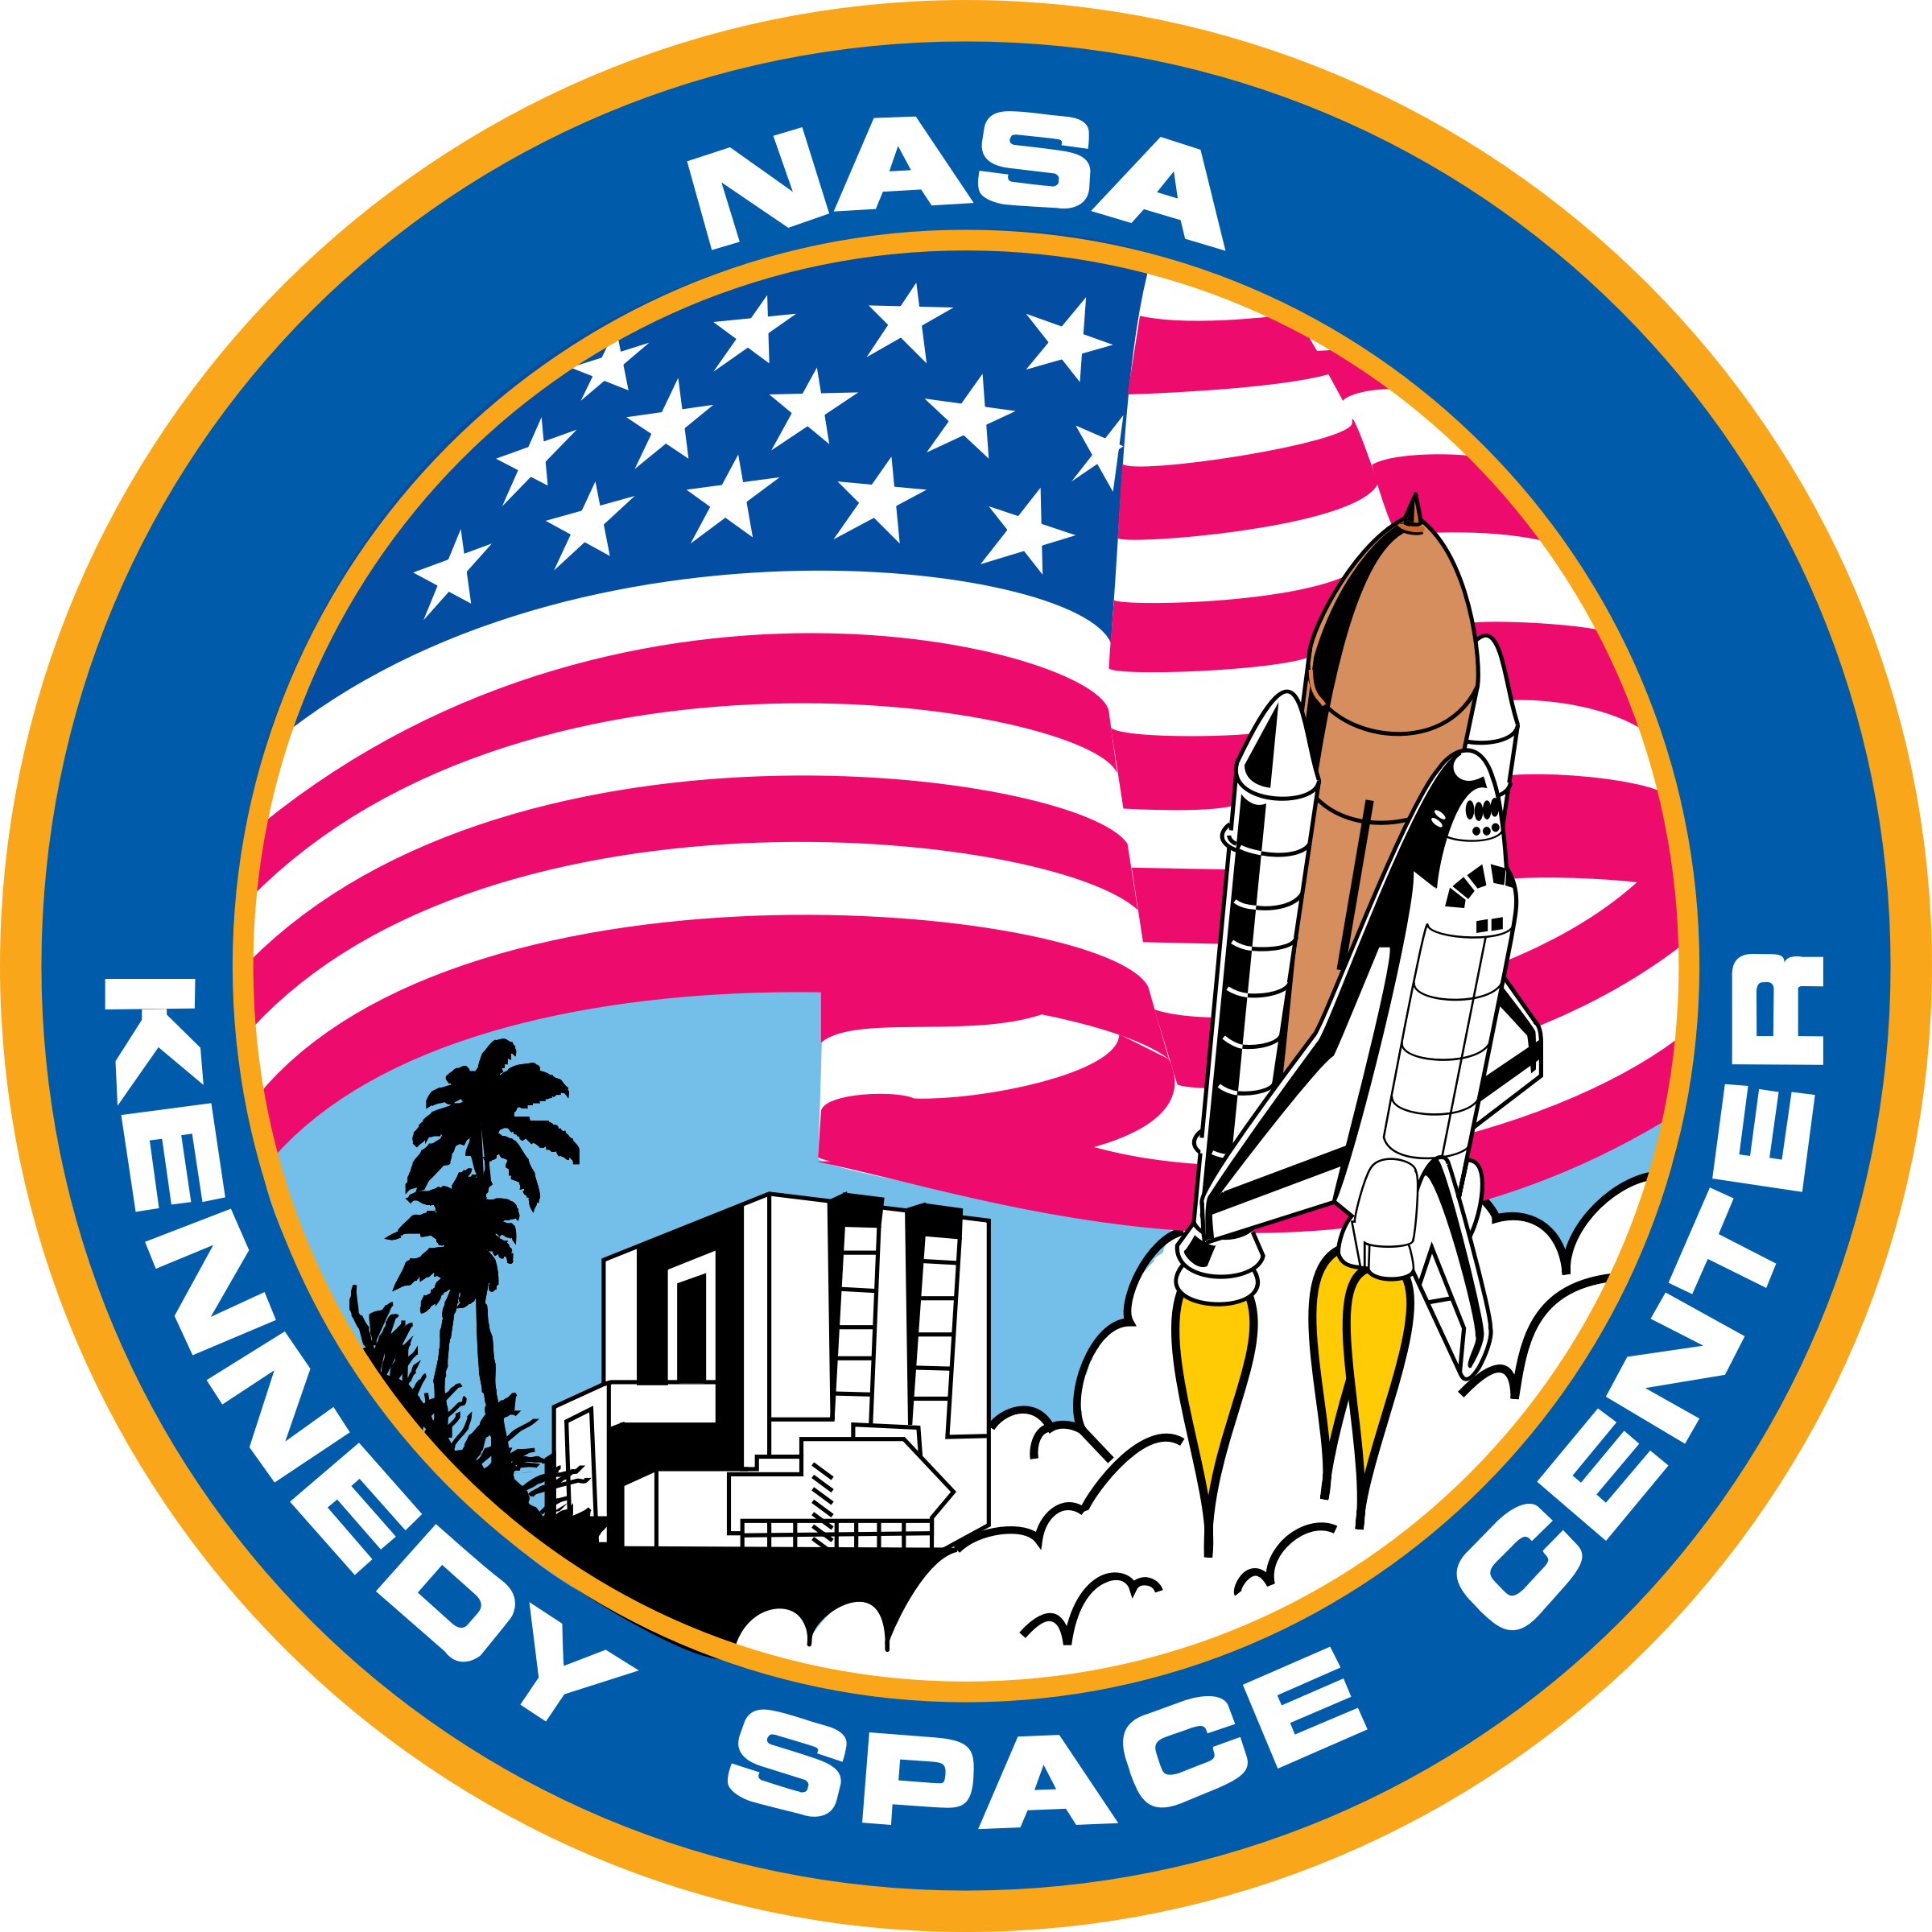 Kennedy Space Center - Titusville